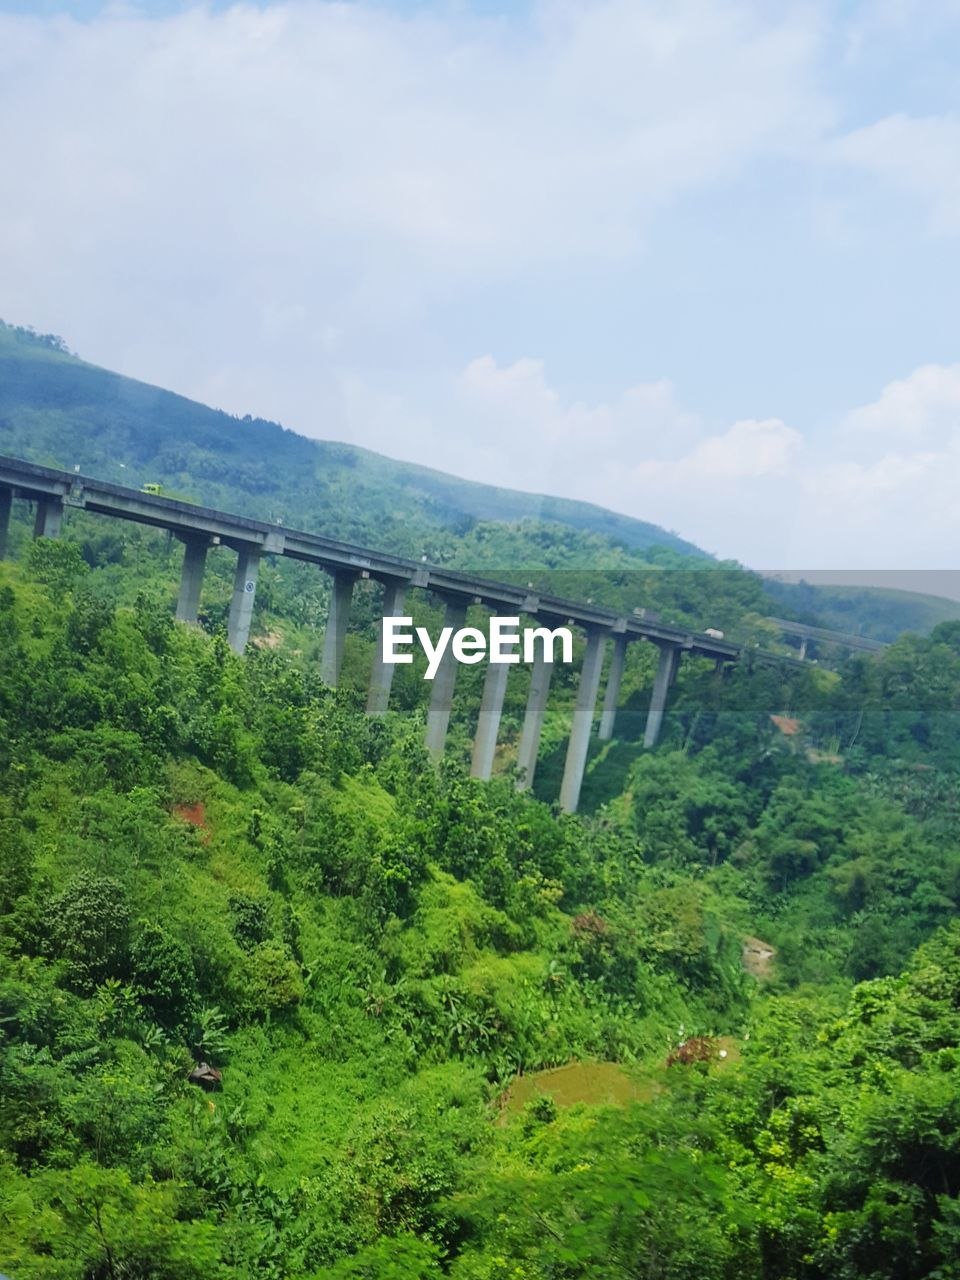 plant, sky, mountain, green color, cloud - sky, nature, environment, tree, scenics - nature, landscape, day, bridge, growth, no people, beauty in nature, foliage, built structure, transportation, lush foliage, tranquil scene, bridge - man made structure, outdoors